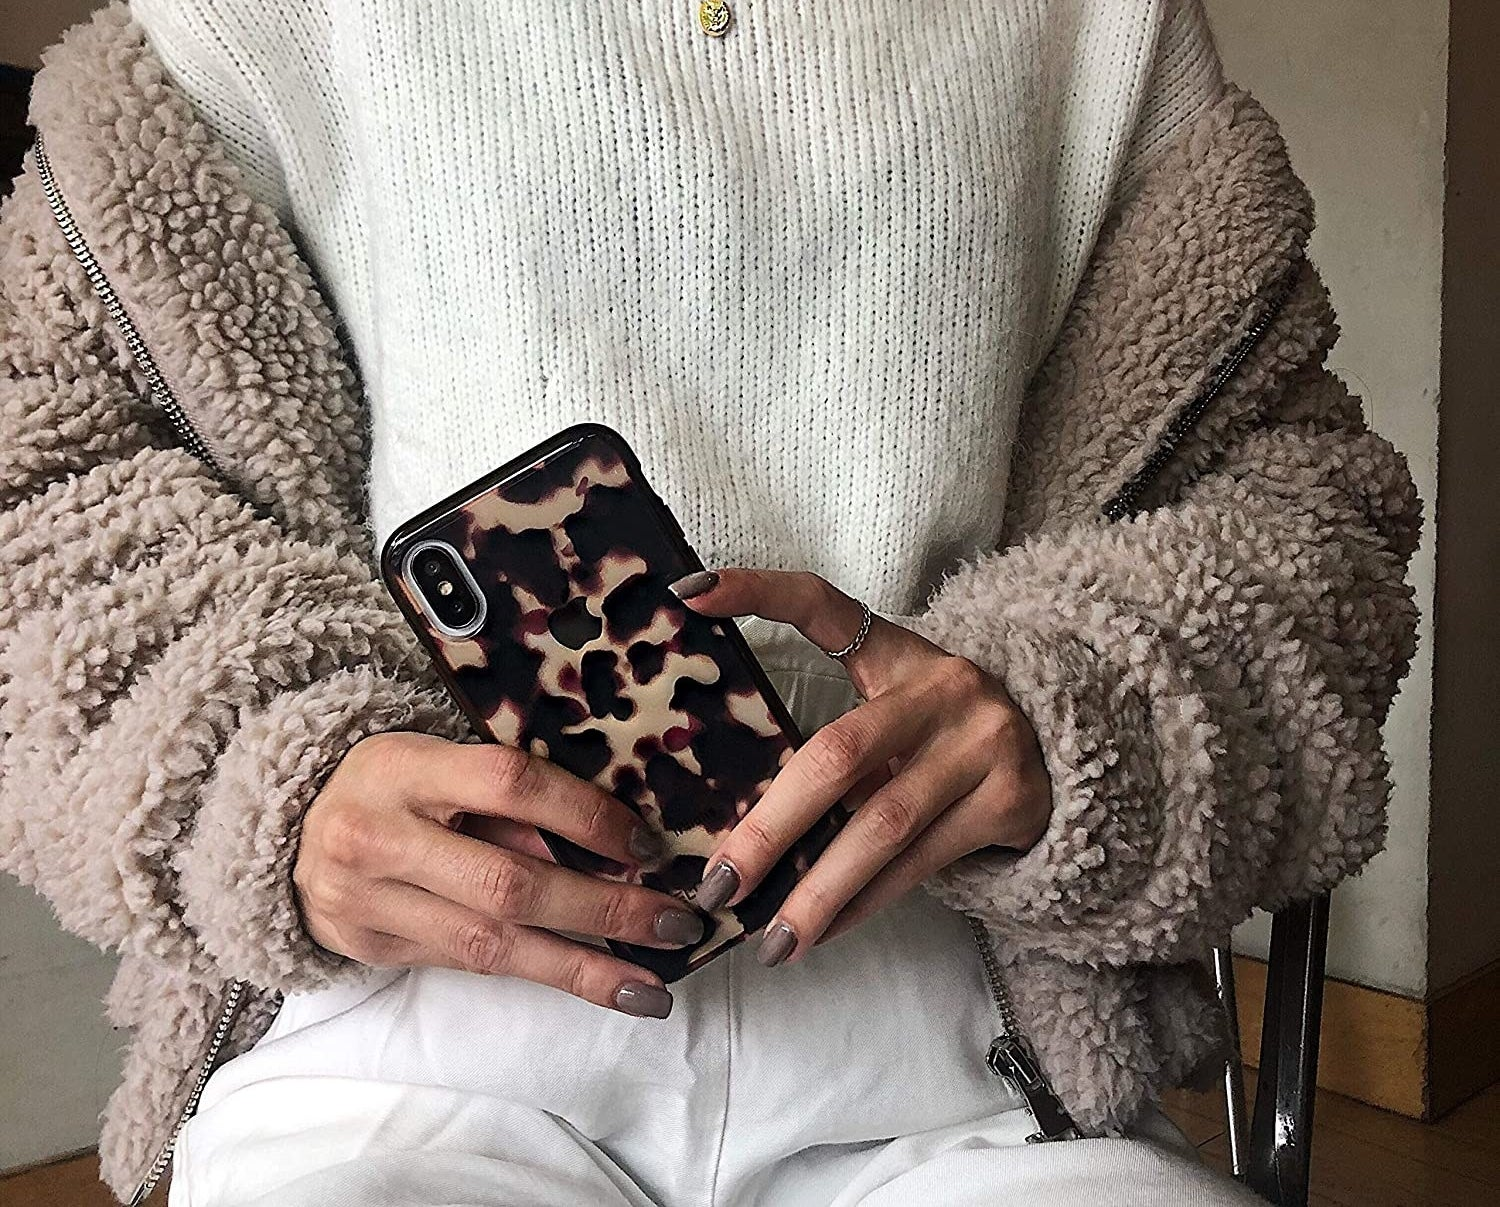 A person holds their phone in front of themselves